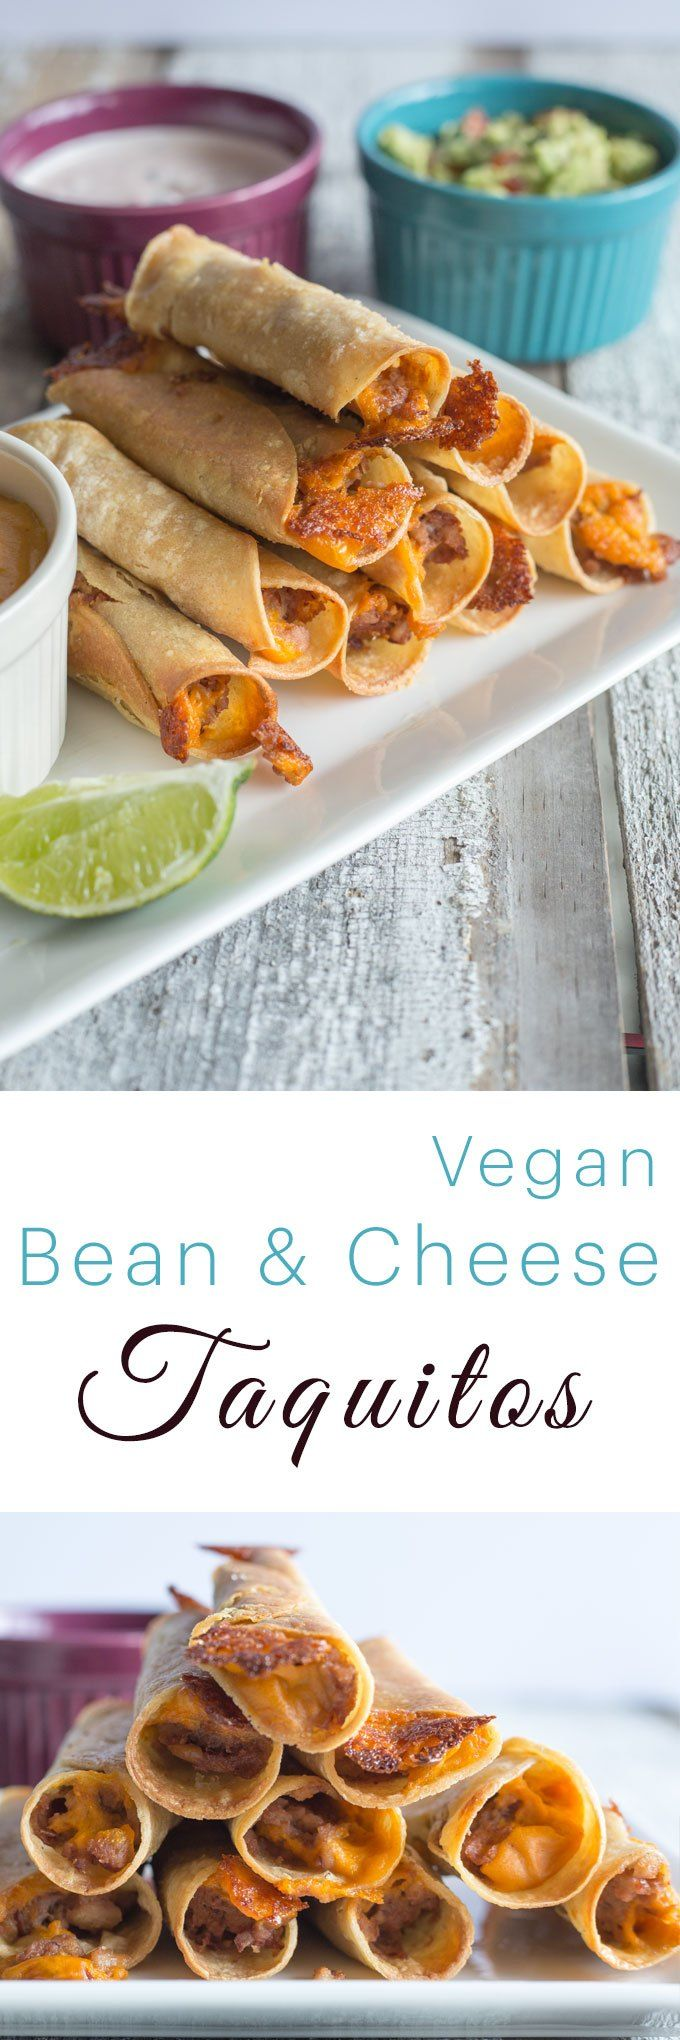 Baked Bean & Vegan Cheese Taquitos with Creamy Salsa and Guacamole | BEST SUPER BOWL SNACKS EVER